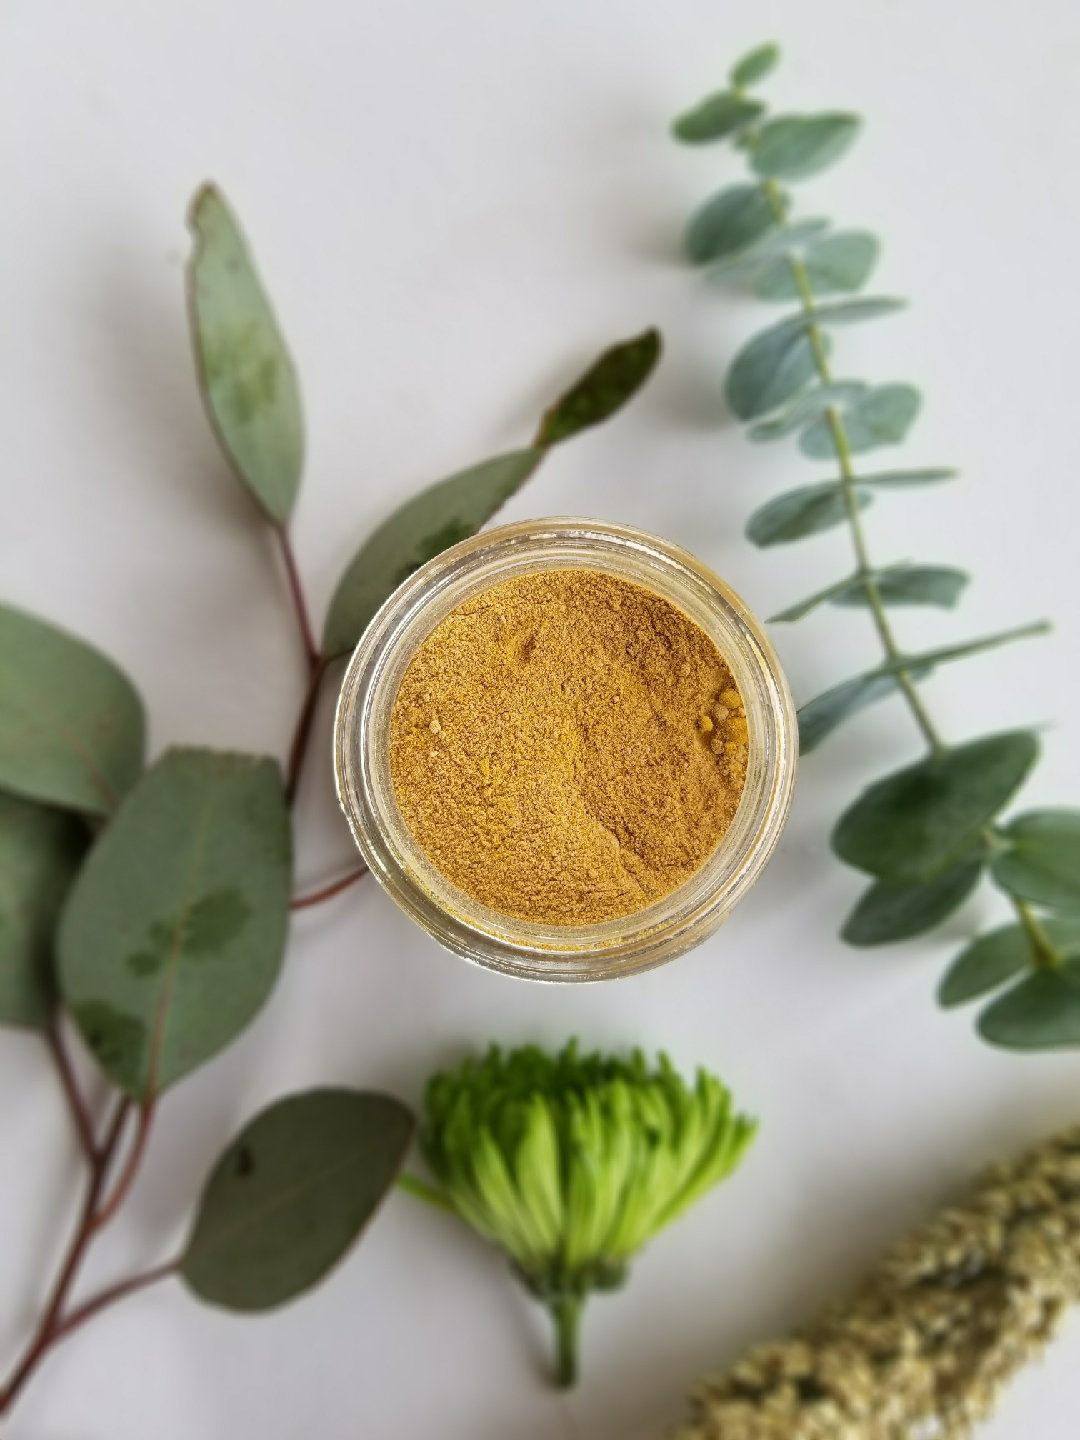 No. 36 Turmeric and Honey Facial Mask - Turmeric's antiseptic, anti-inflammatory, antibacterial, anti-fungal, and anti-viral properties help with various skin problems relating to inflammation, clogged pores, redness, uneven skin tone, and facial hair growth.Ingredients: turmeric powder*, honey powder,* bentonite clay,* chamomile flower powder,* tea tree oil*, & ylang ylang oil**organic